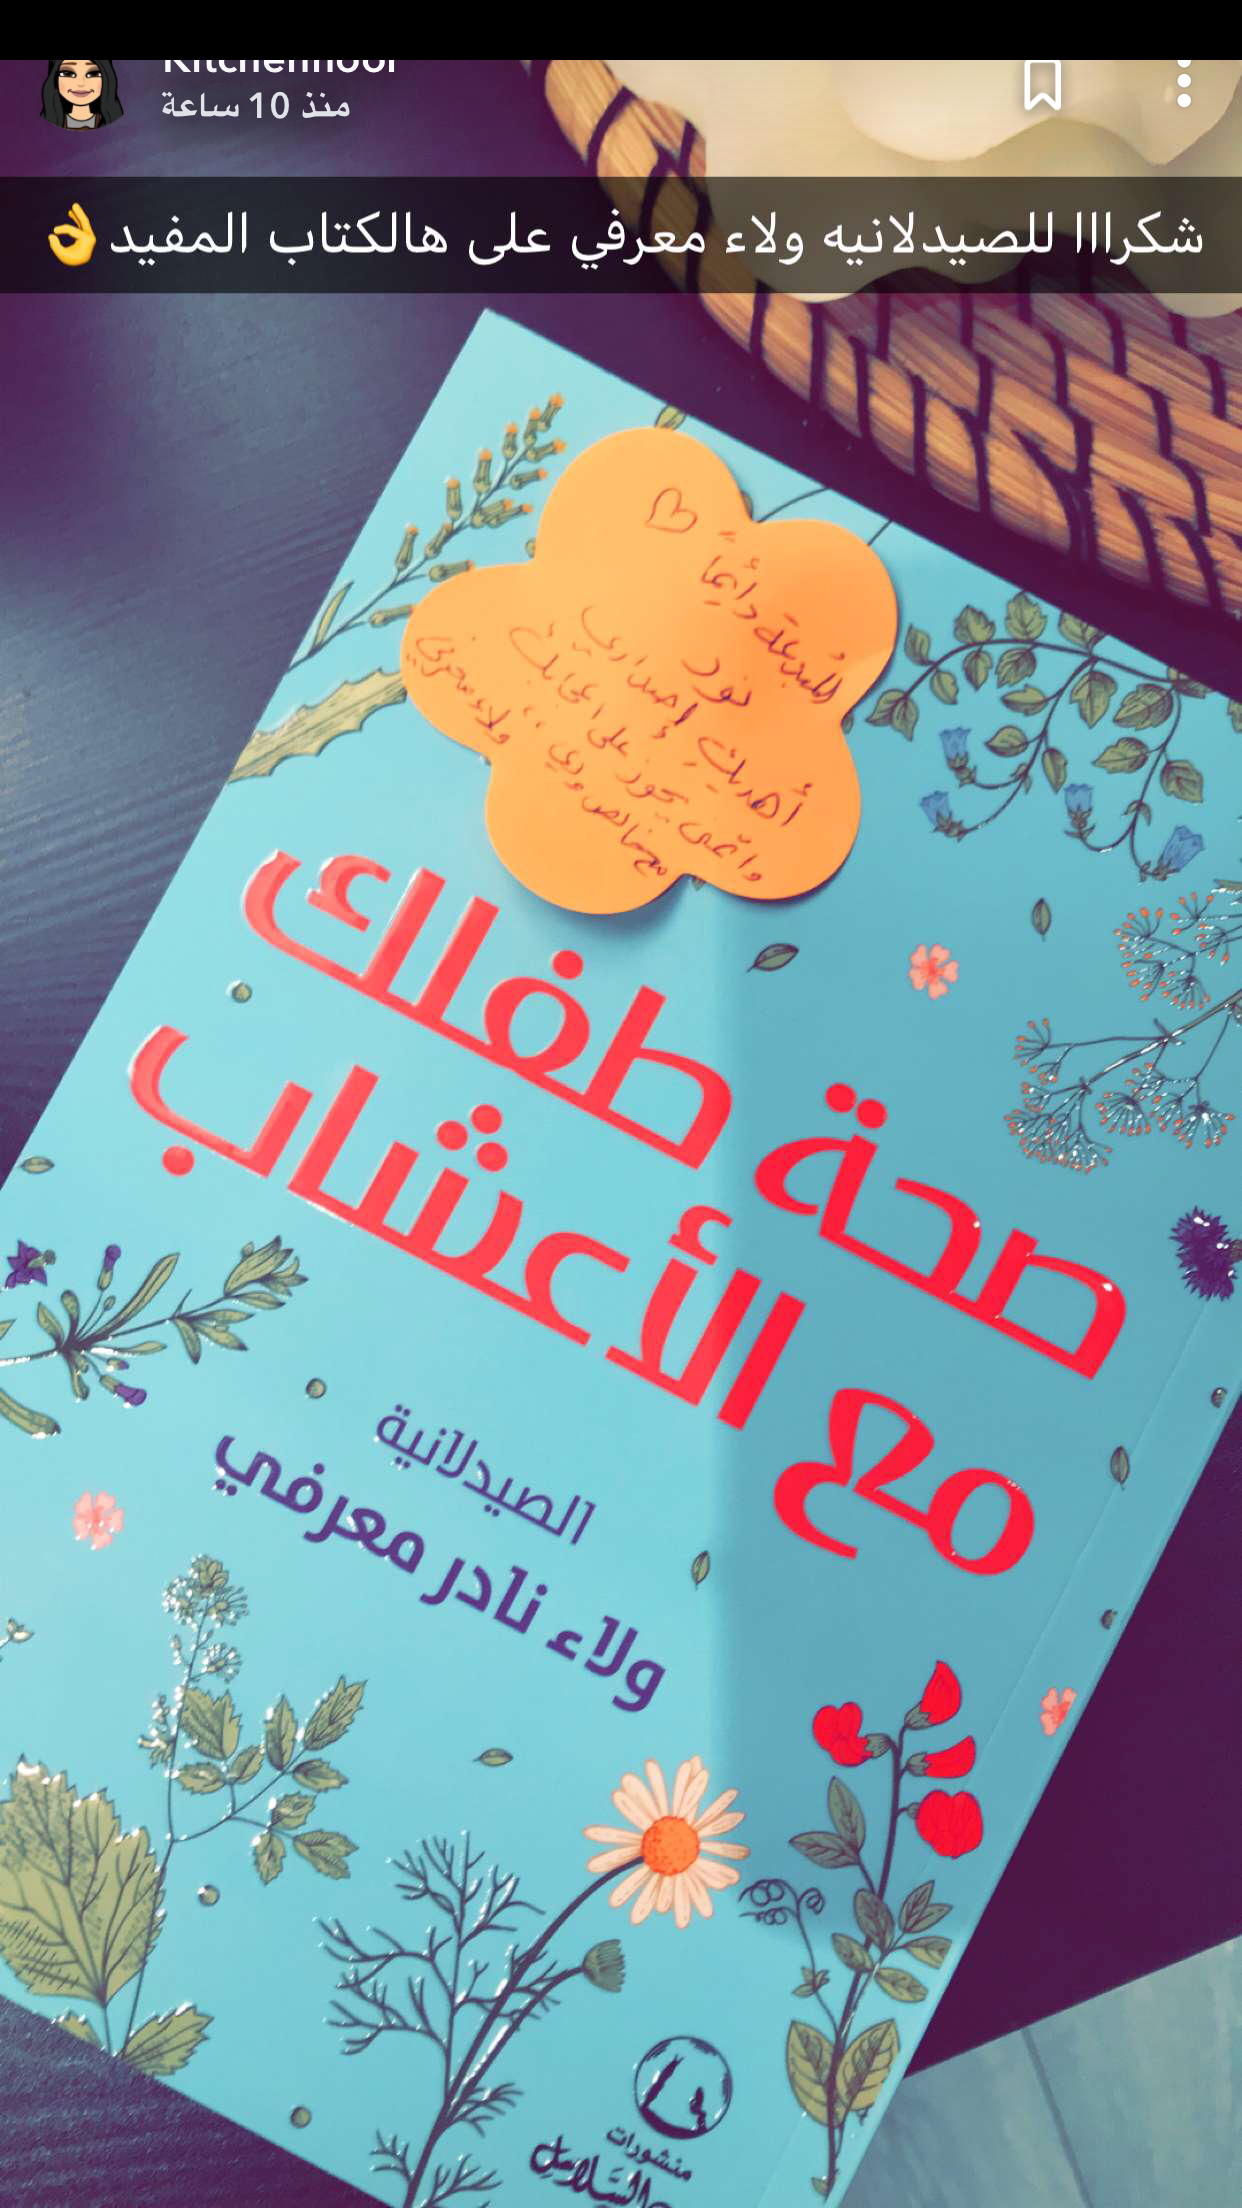 Pin By Maria X On Books كتب Books Book Lists Book Cover